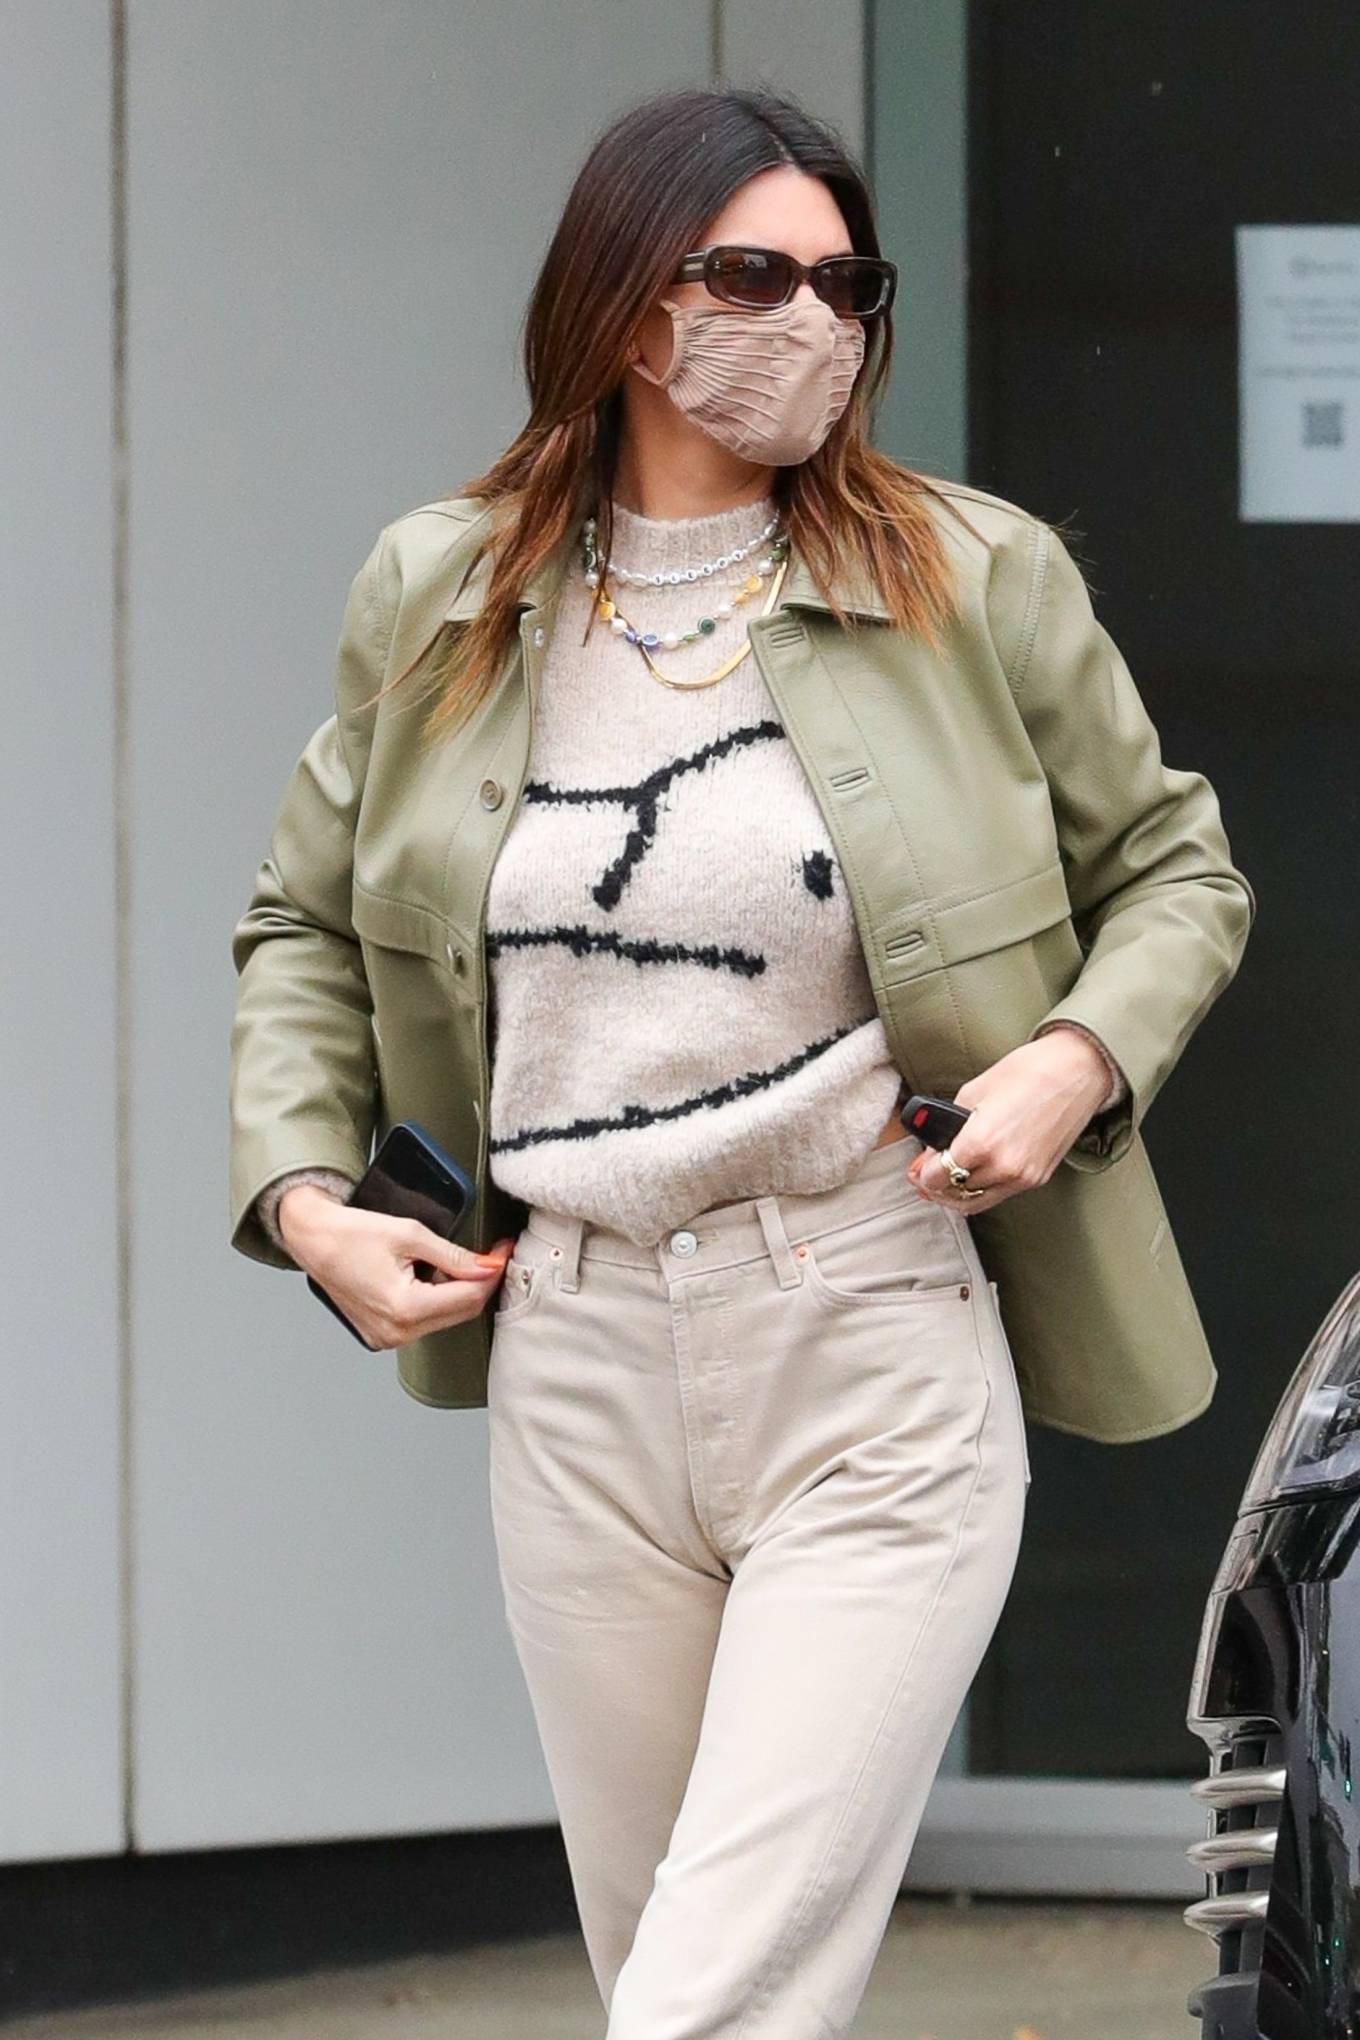 Kendall Jenner donning a relaxed fit off white sweater while heading to have breakfast